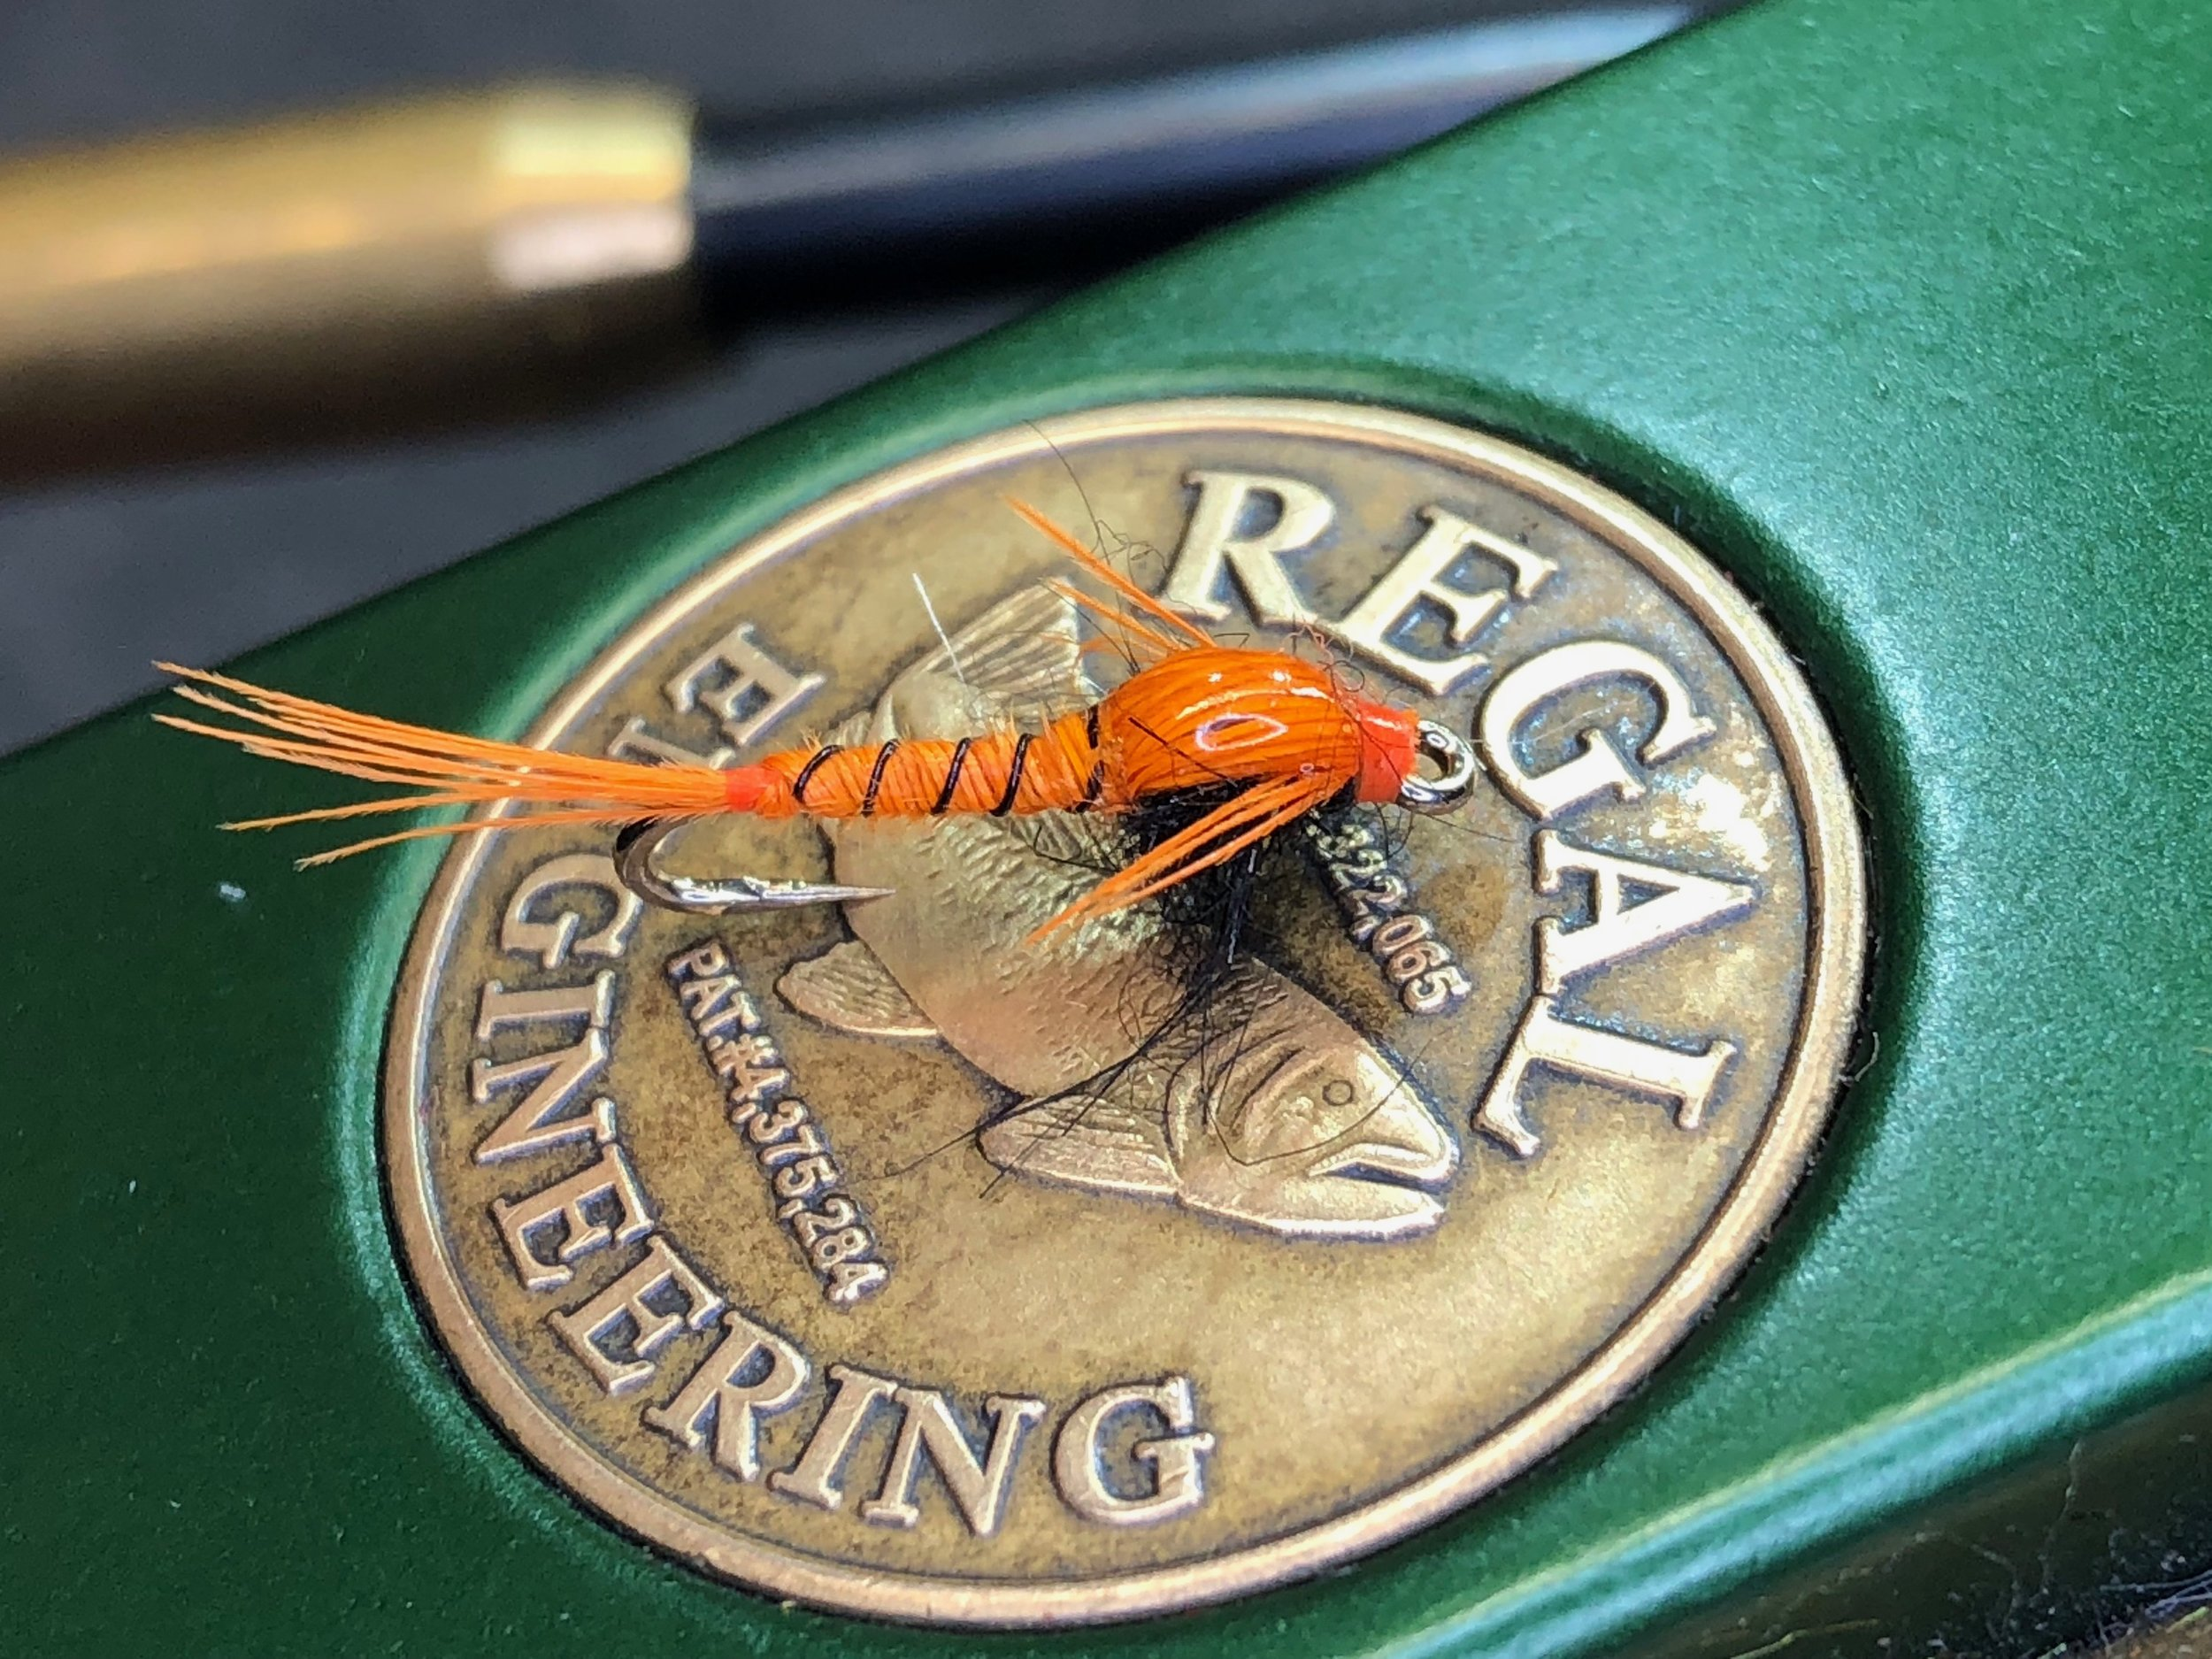 The Panfish Pheasant Tail Nymph swaps out natural pheasant tail fibers for some dyed flourescent orange.